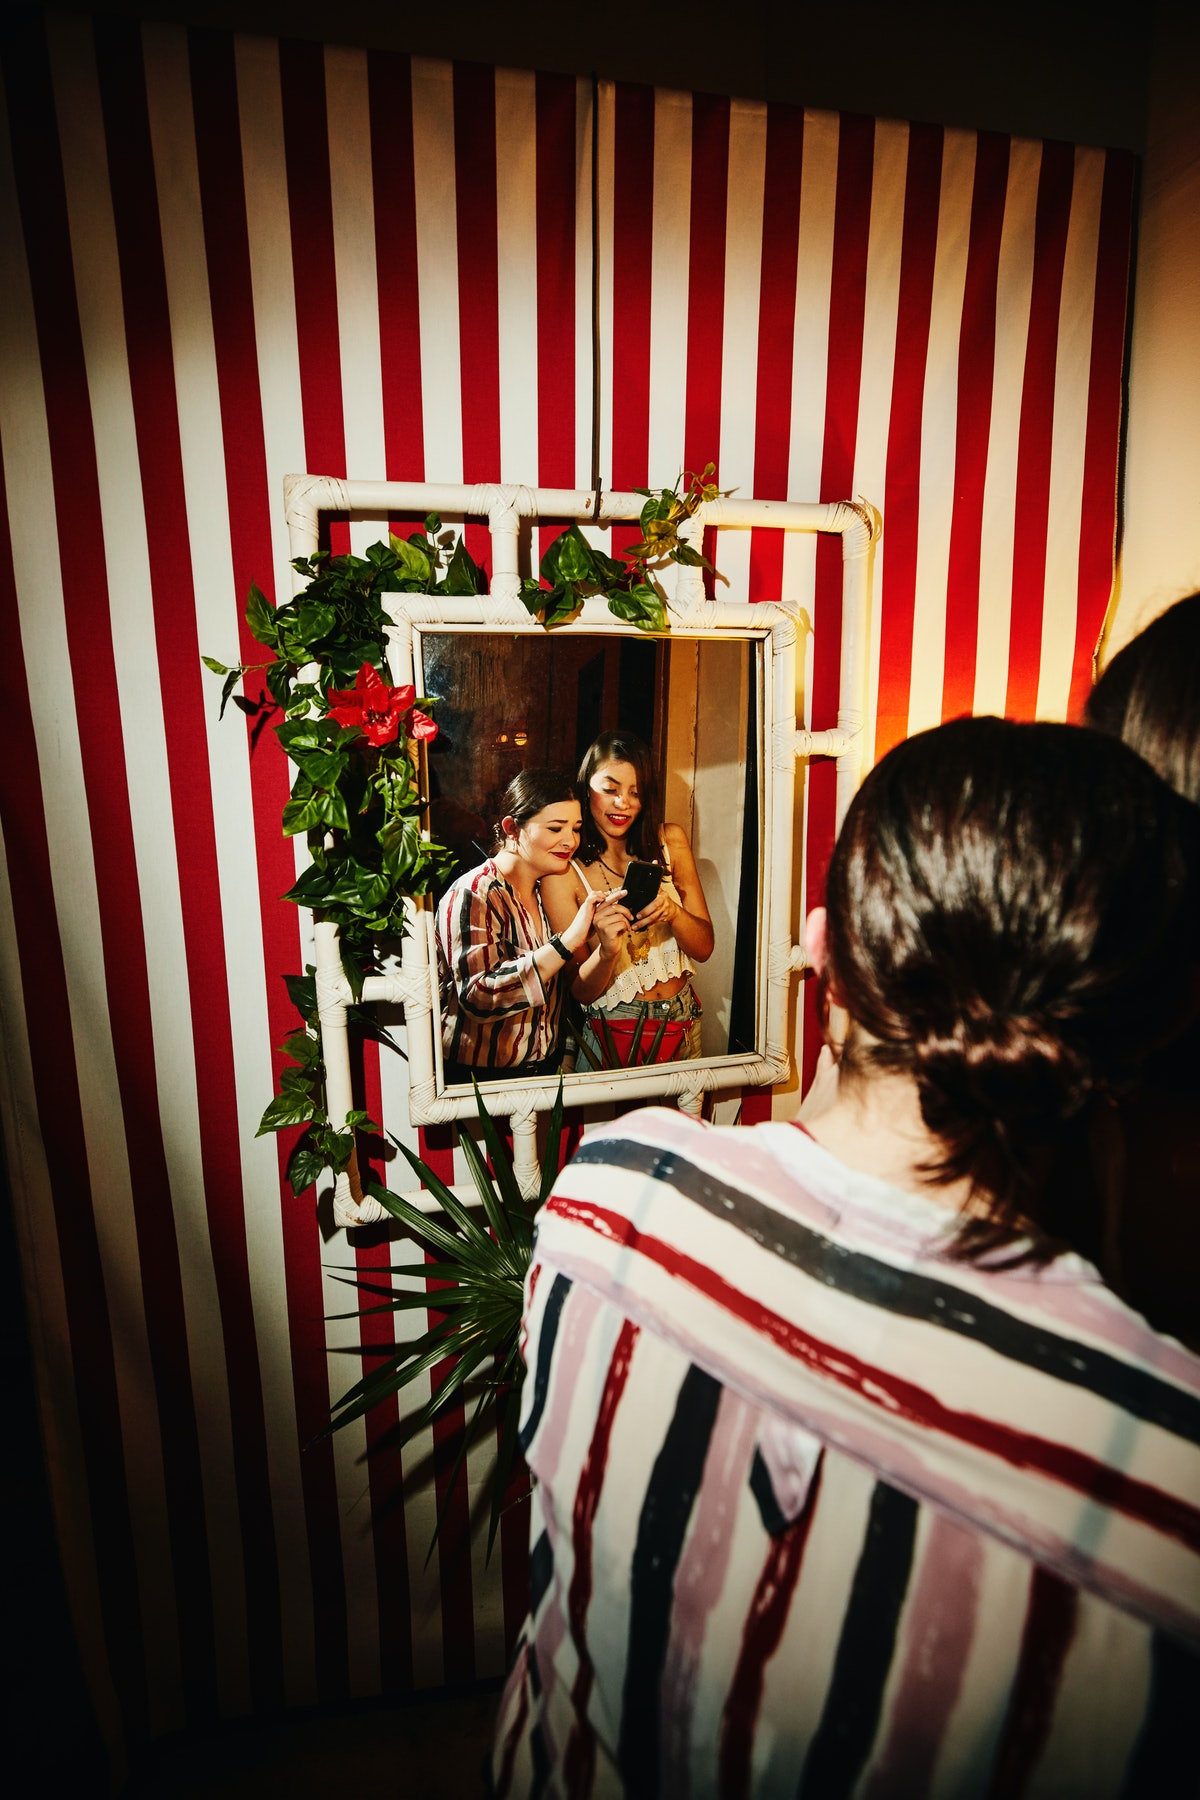 Two women smile and pose in front of a cool mirror on a striped wall for a selfie.